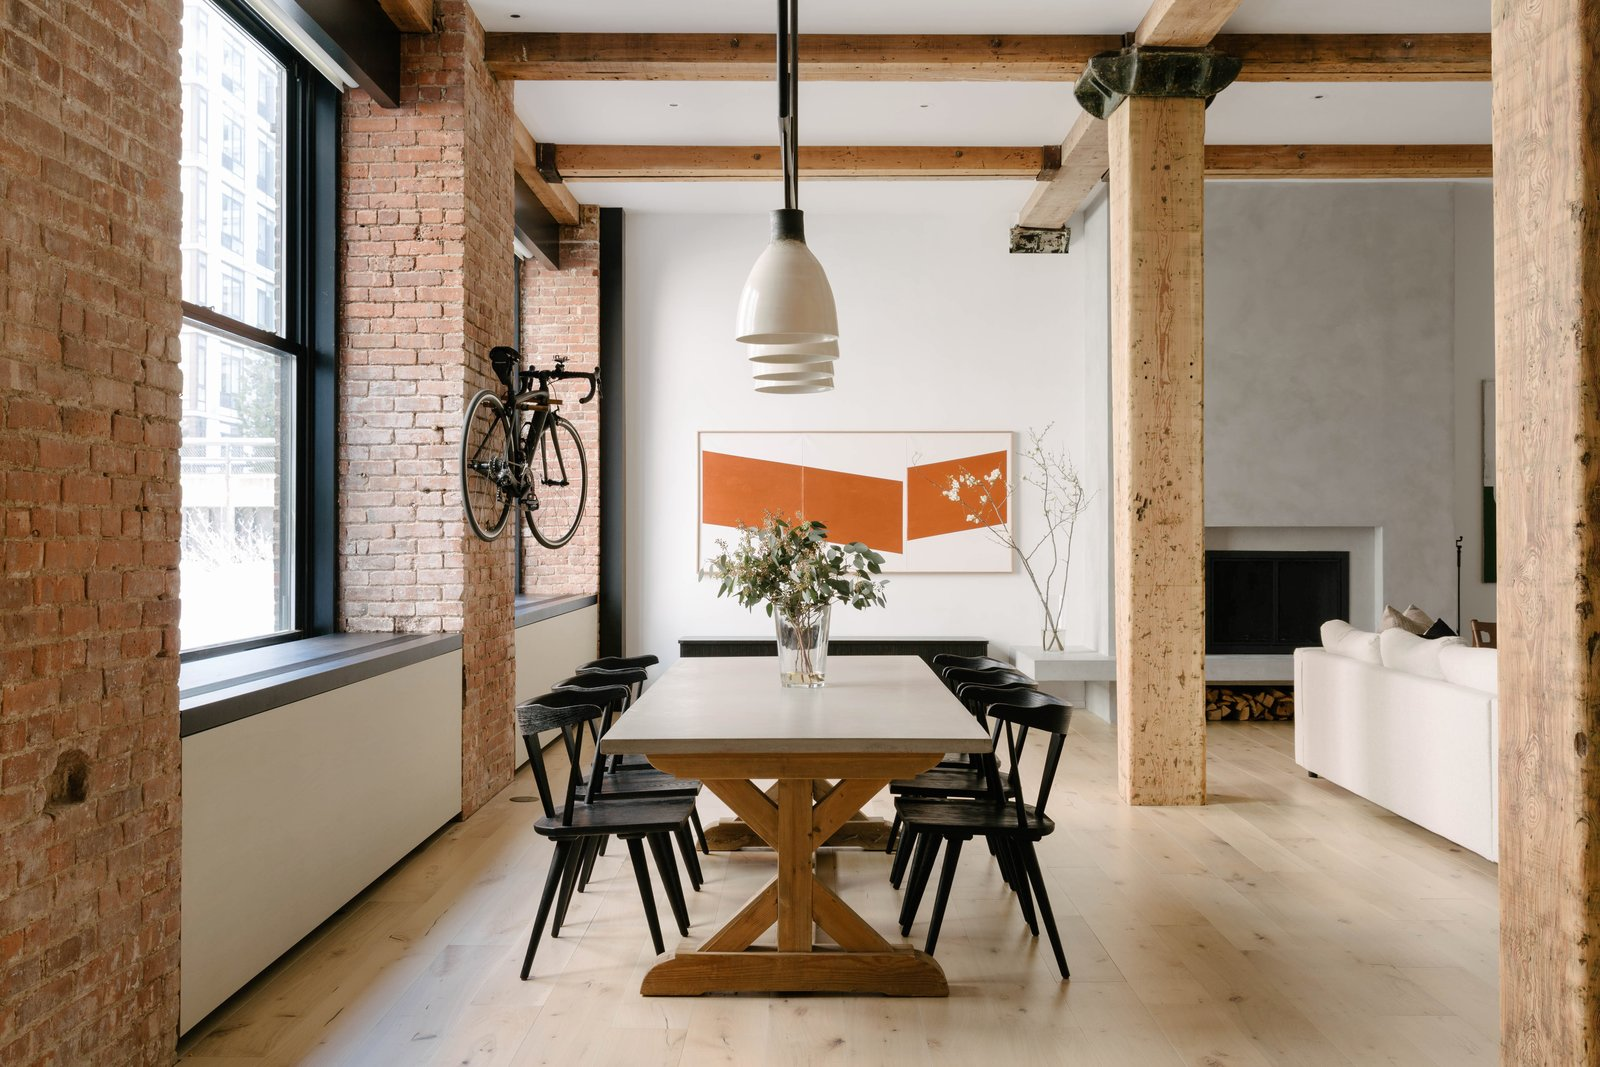 Before & After: A Classic NYC Loft Ditches Its '90s Look for Refined Minimalism